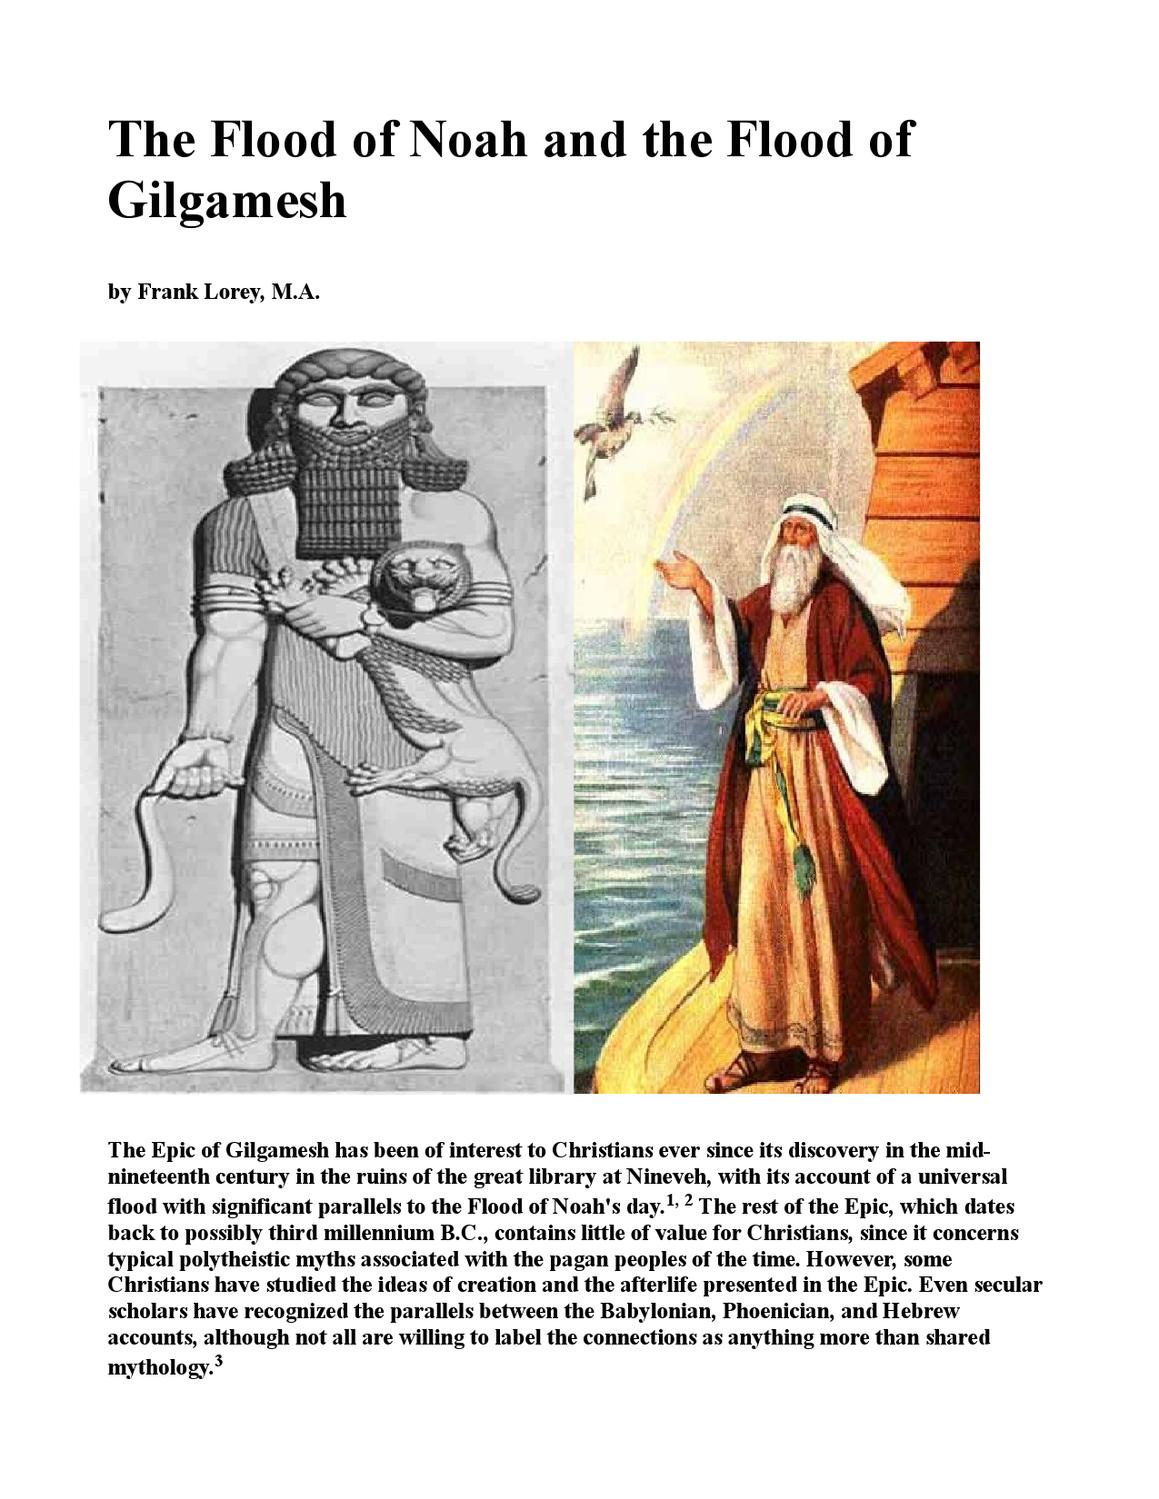 the flood of noah and gilgamesh essay This paper examines how, since its discovery in the mid-19th century, the epic of gilgamesh has been of interest to christians because of its account of a universal flood, which has significant parallels to the flood of noah's day.